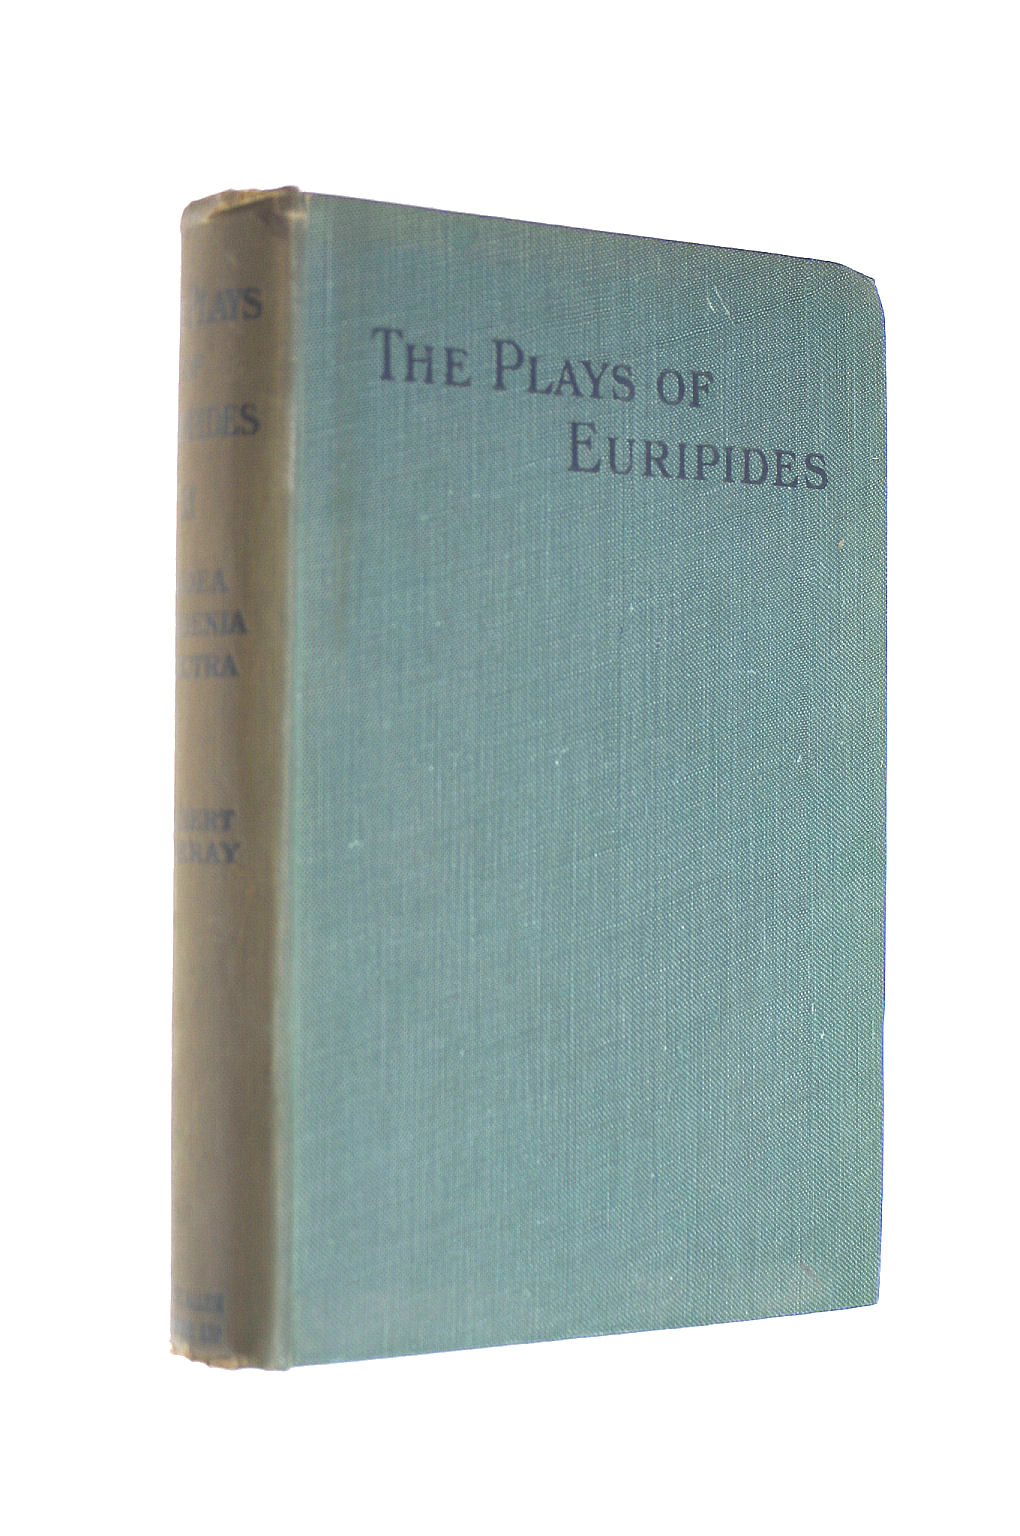 Image for The Plays Of Euripides Vol. II (2) Medea, Iphigenia in Tauris, Electra